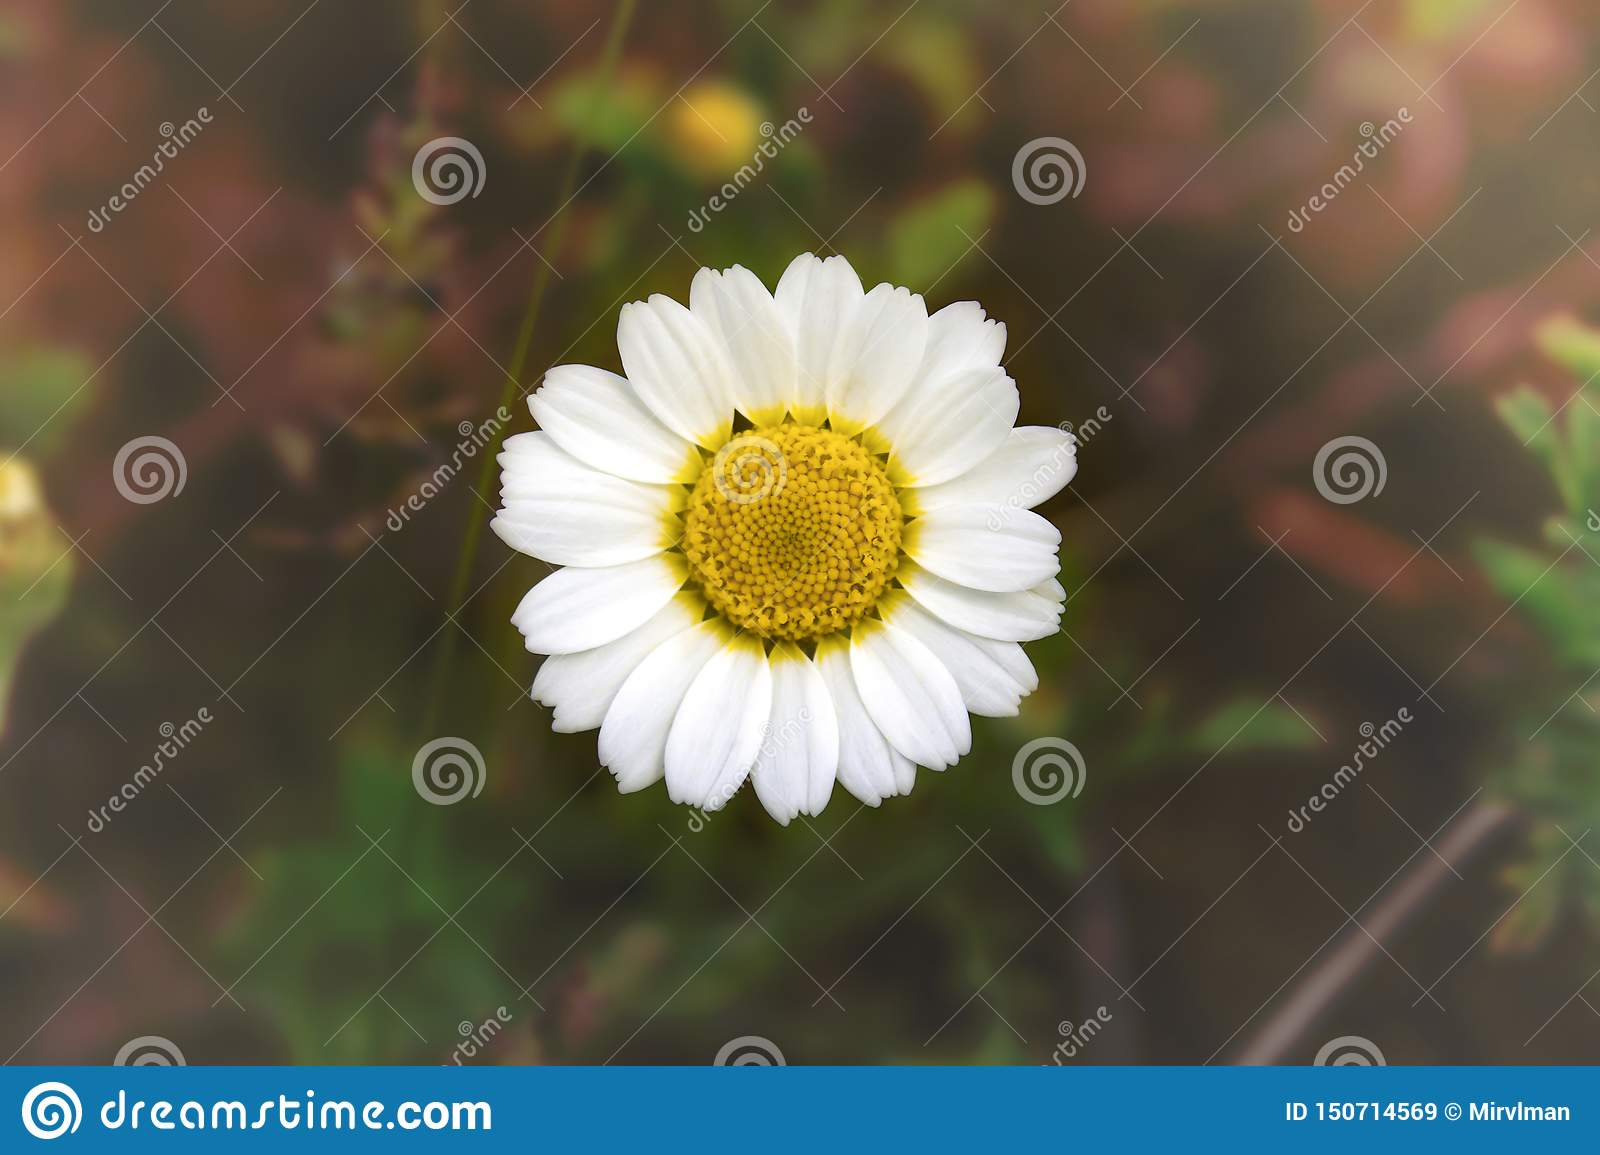 White chamomile - daisy on blurred background